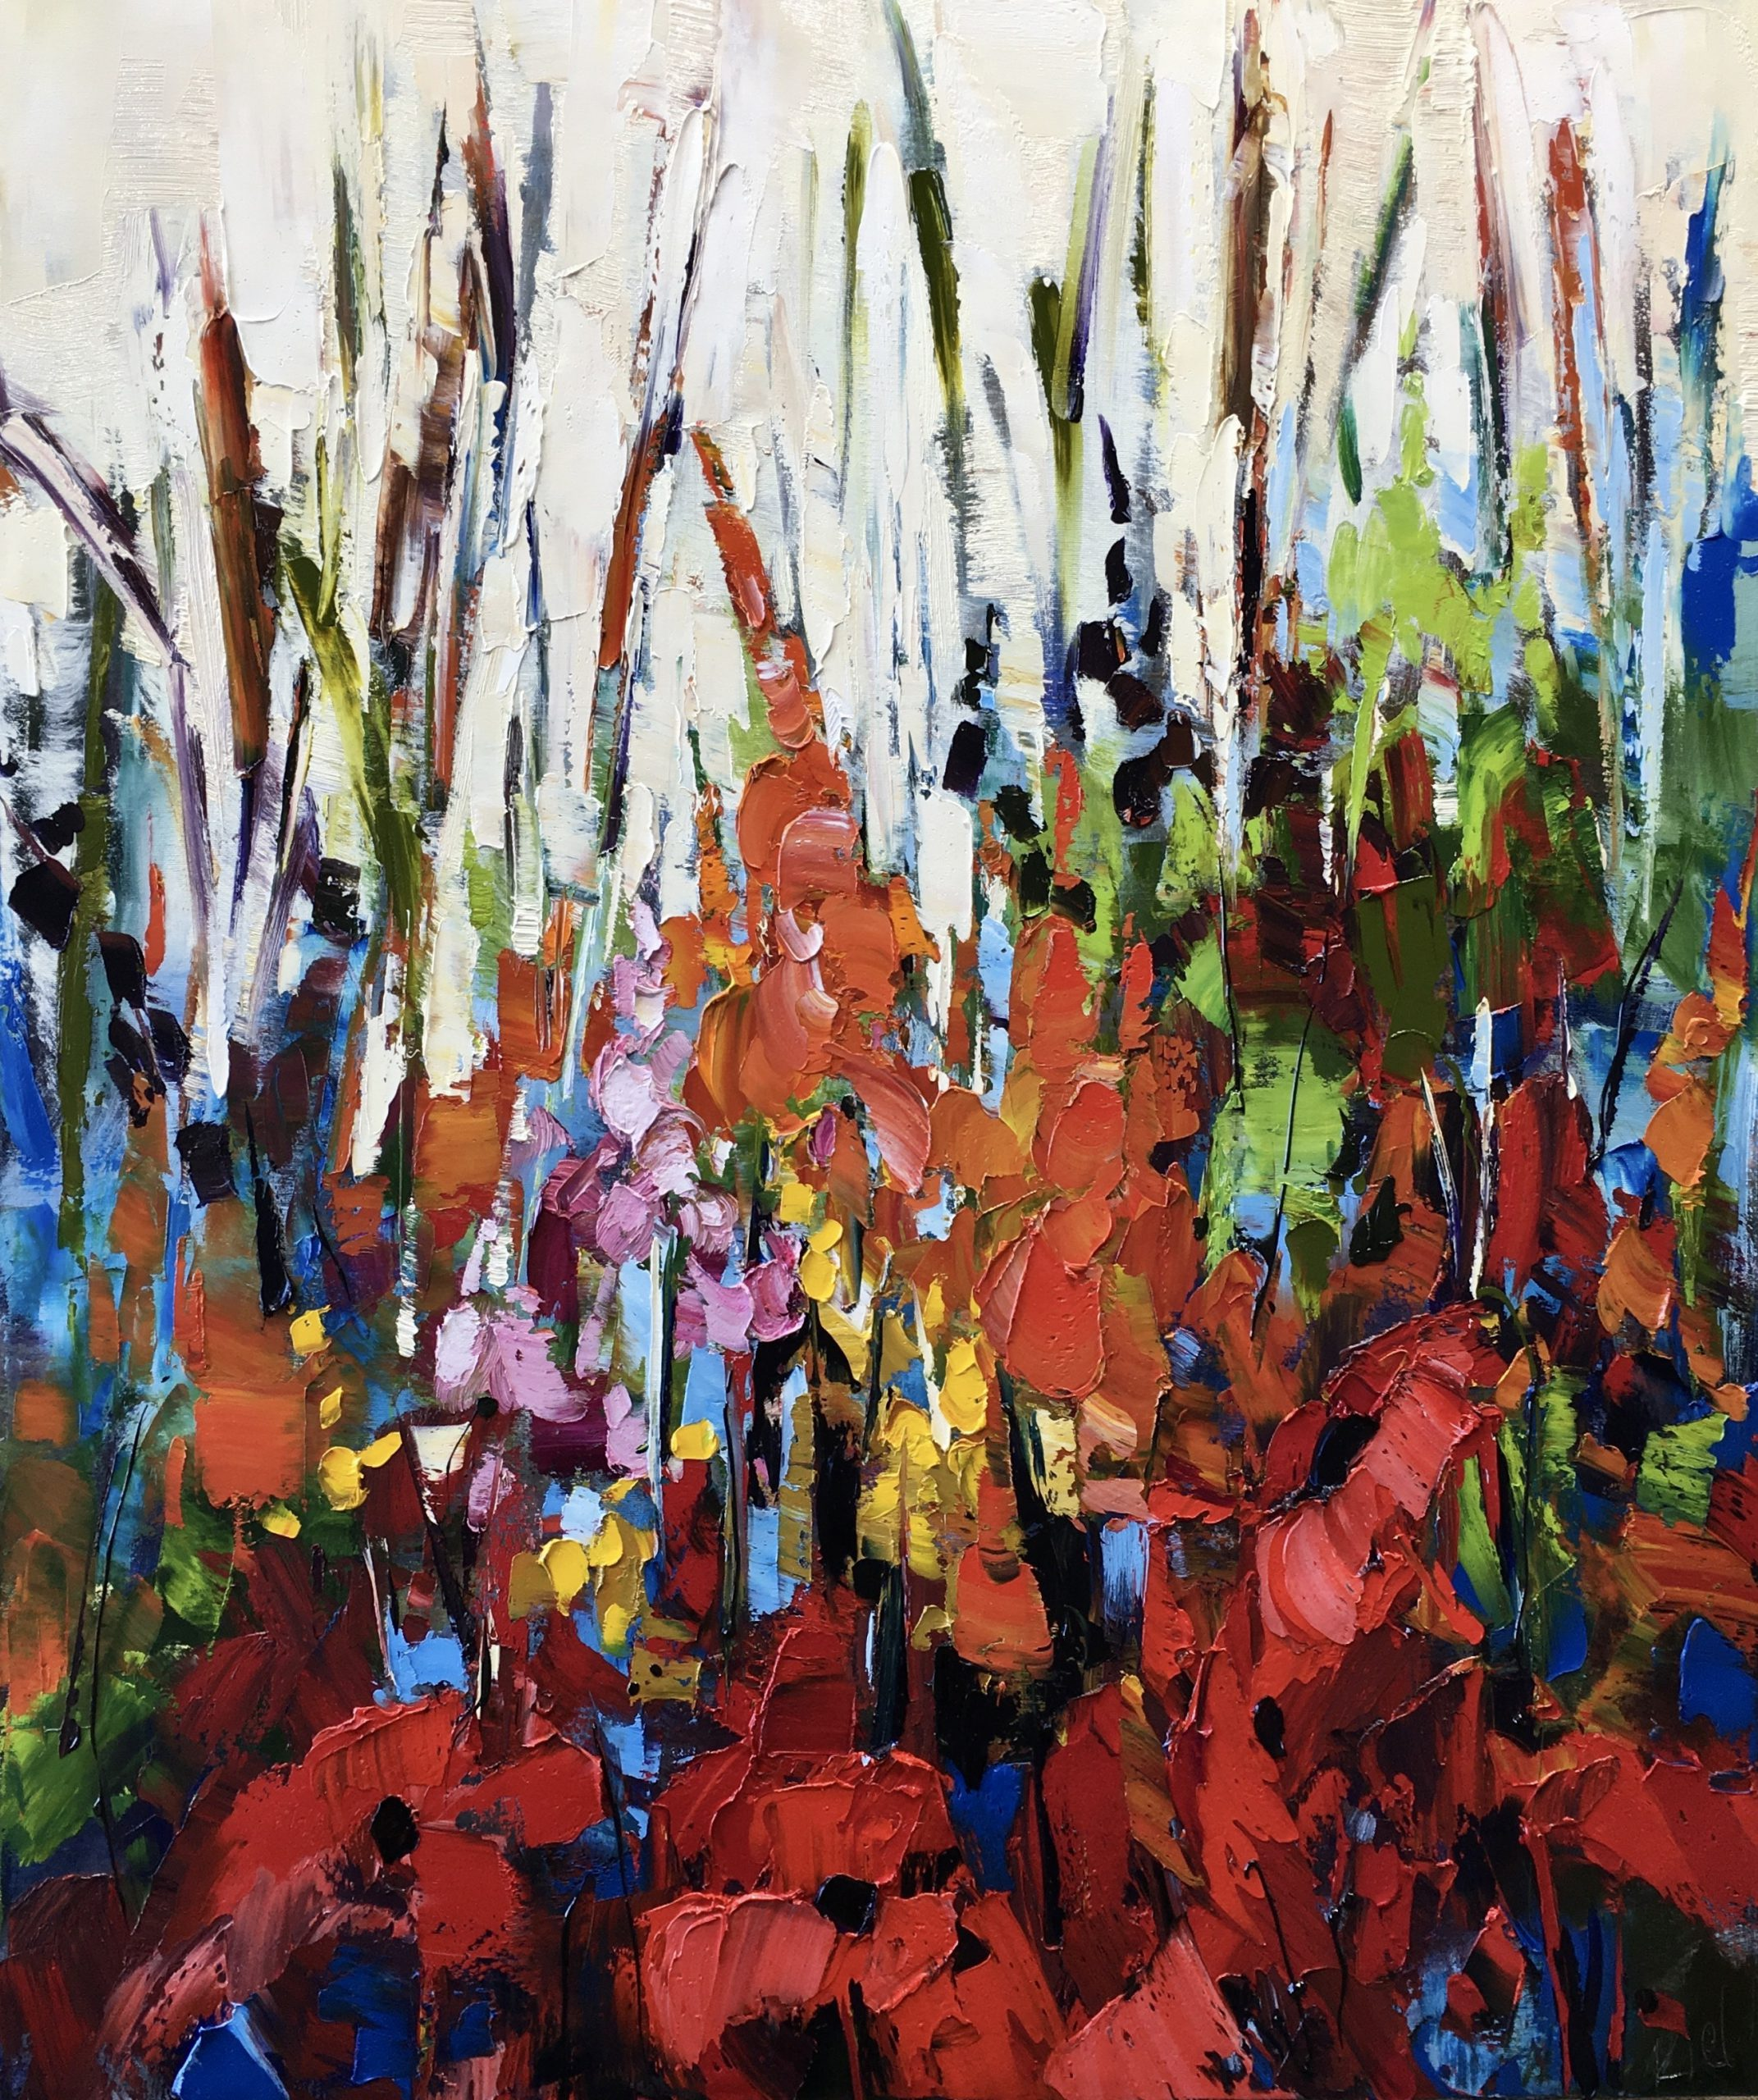 Wild Exuberance, oil painting by Kimberly Kiel   Effusion Art Gallery + Cast Glass Studio, Invermere BC